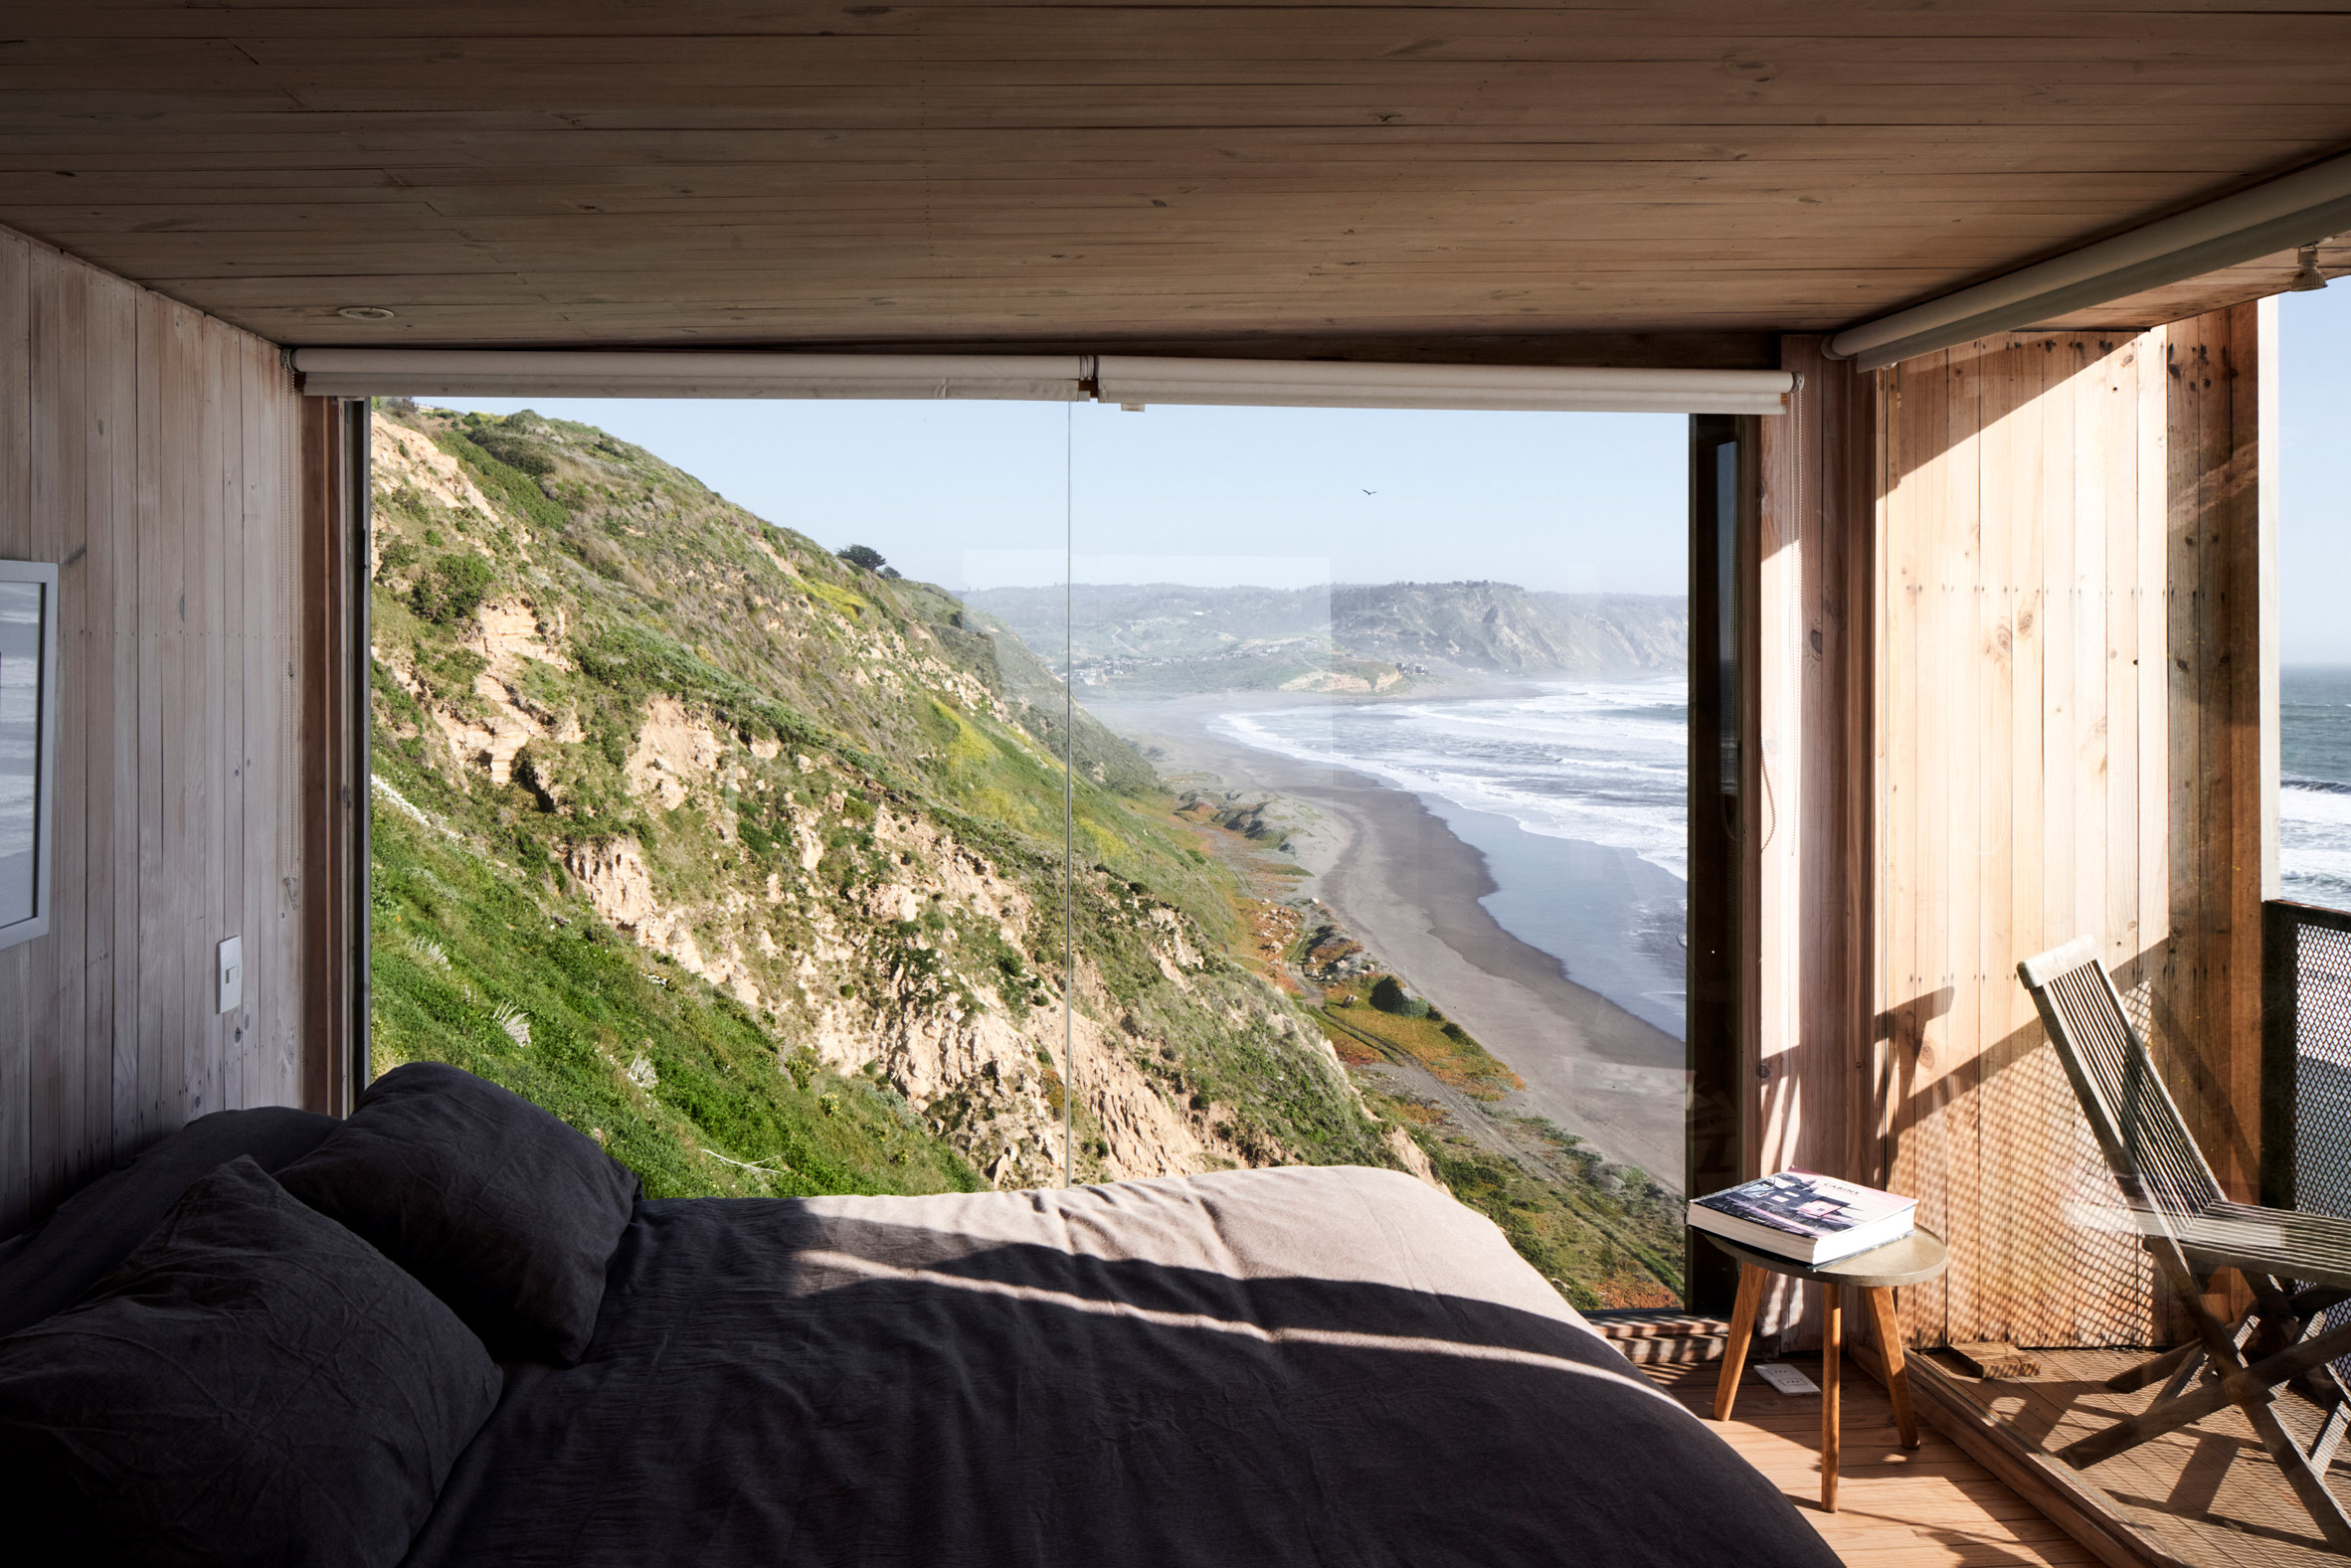 cabin overlooking the sea by Croxatto and Opazo Architects